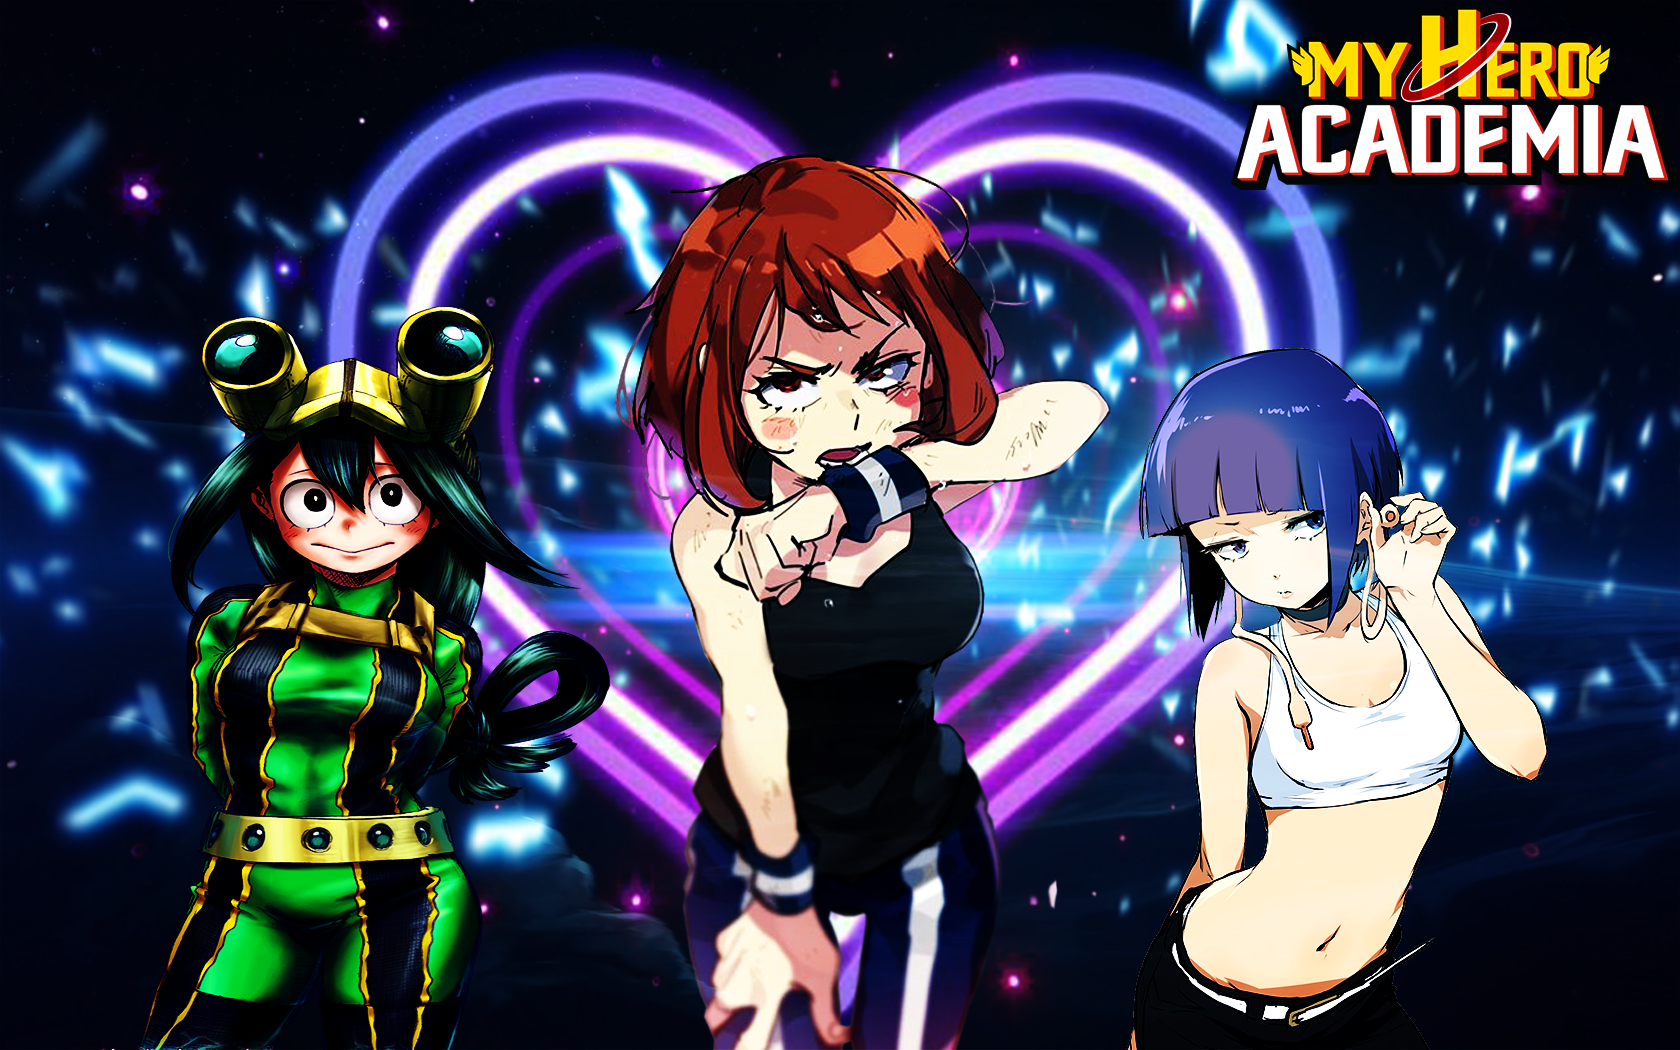 My Hero Acadamia Girls Hd Wallpaper By Jdoggokussj2 On Deviantart